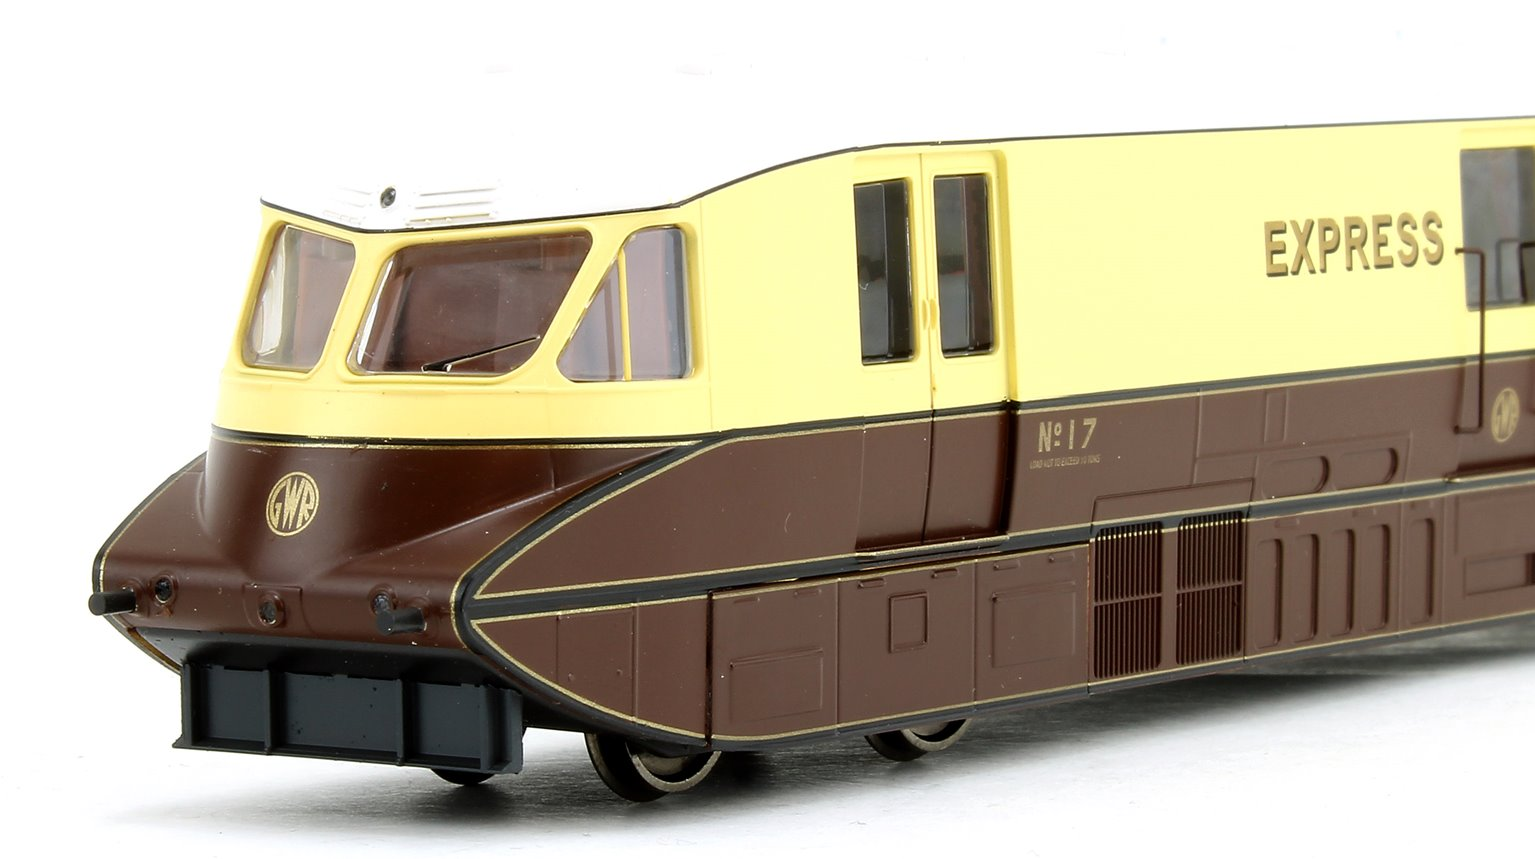 Streamlined Railcar Express Parcels Choc/Cream Locomotive No.17 - DCC Fitted